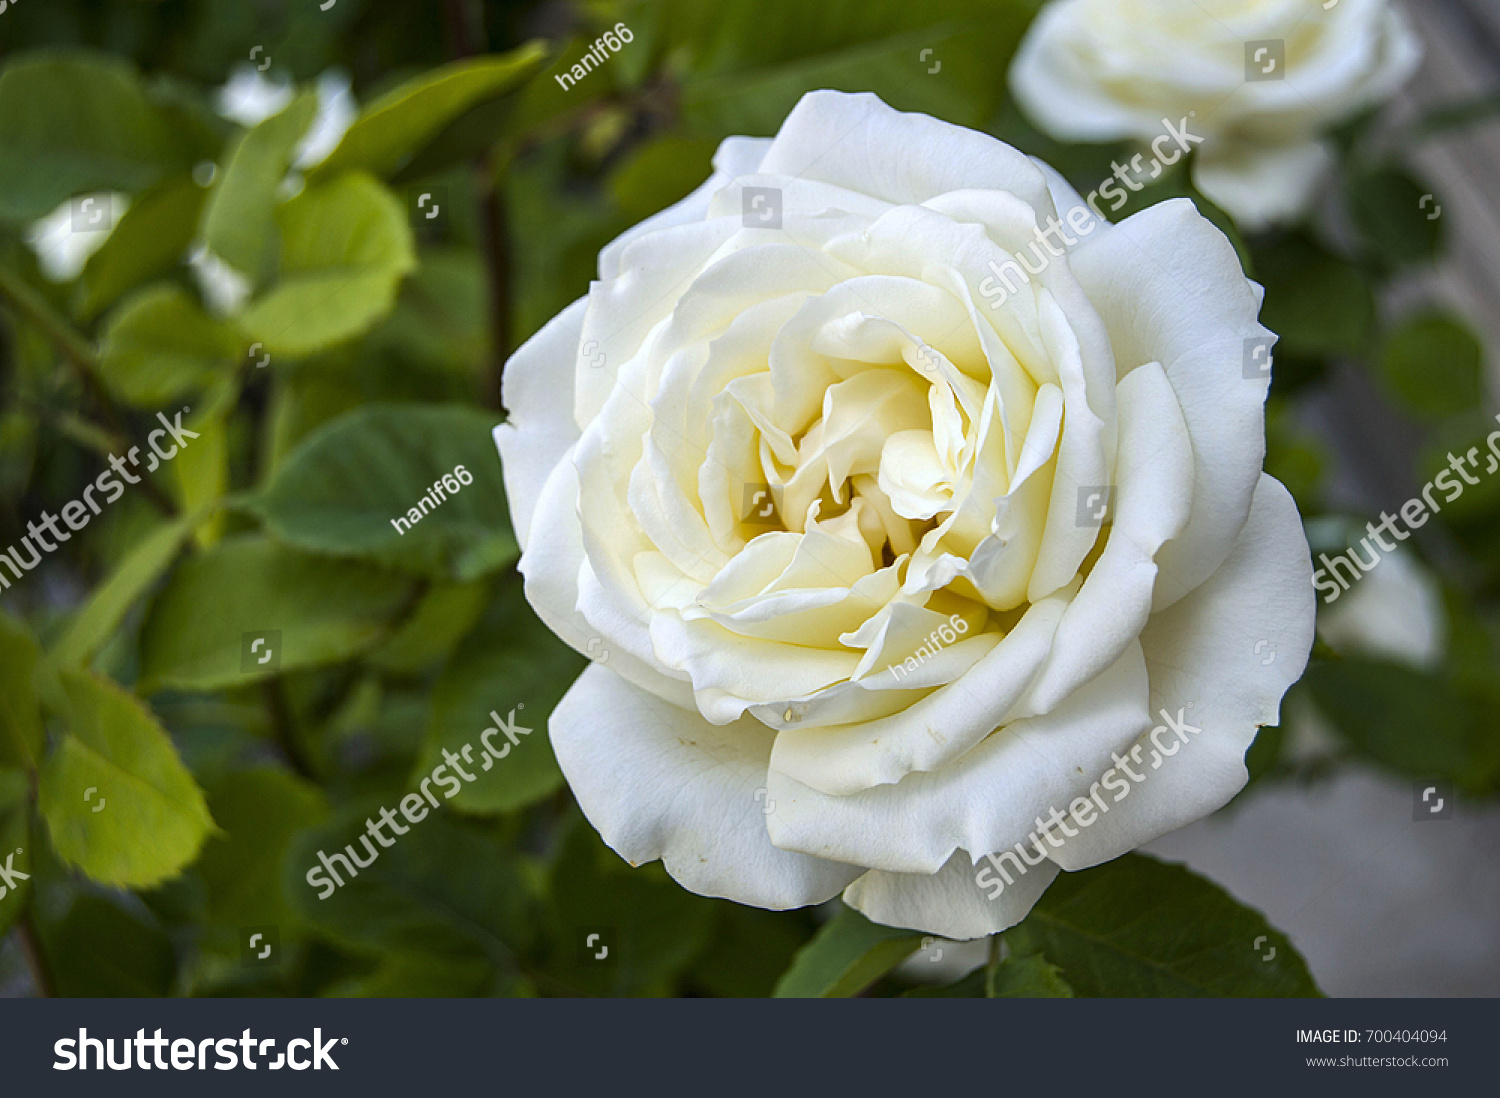 Roses love symbol roses white roses stock photo 700404094 shutterstock roses love symbol roses white roses for lovers day natural roses in the buycottarizona Choice Image